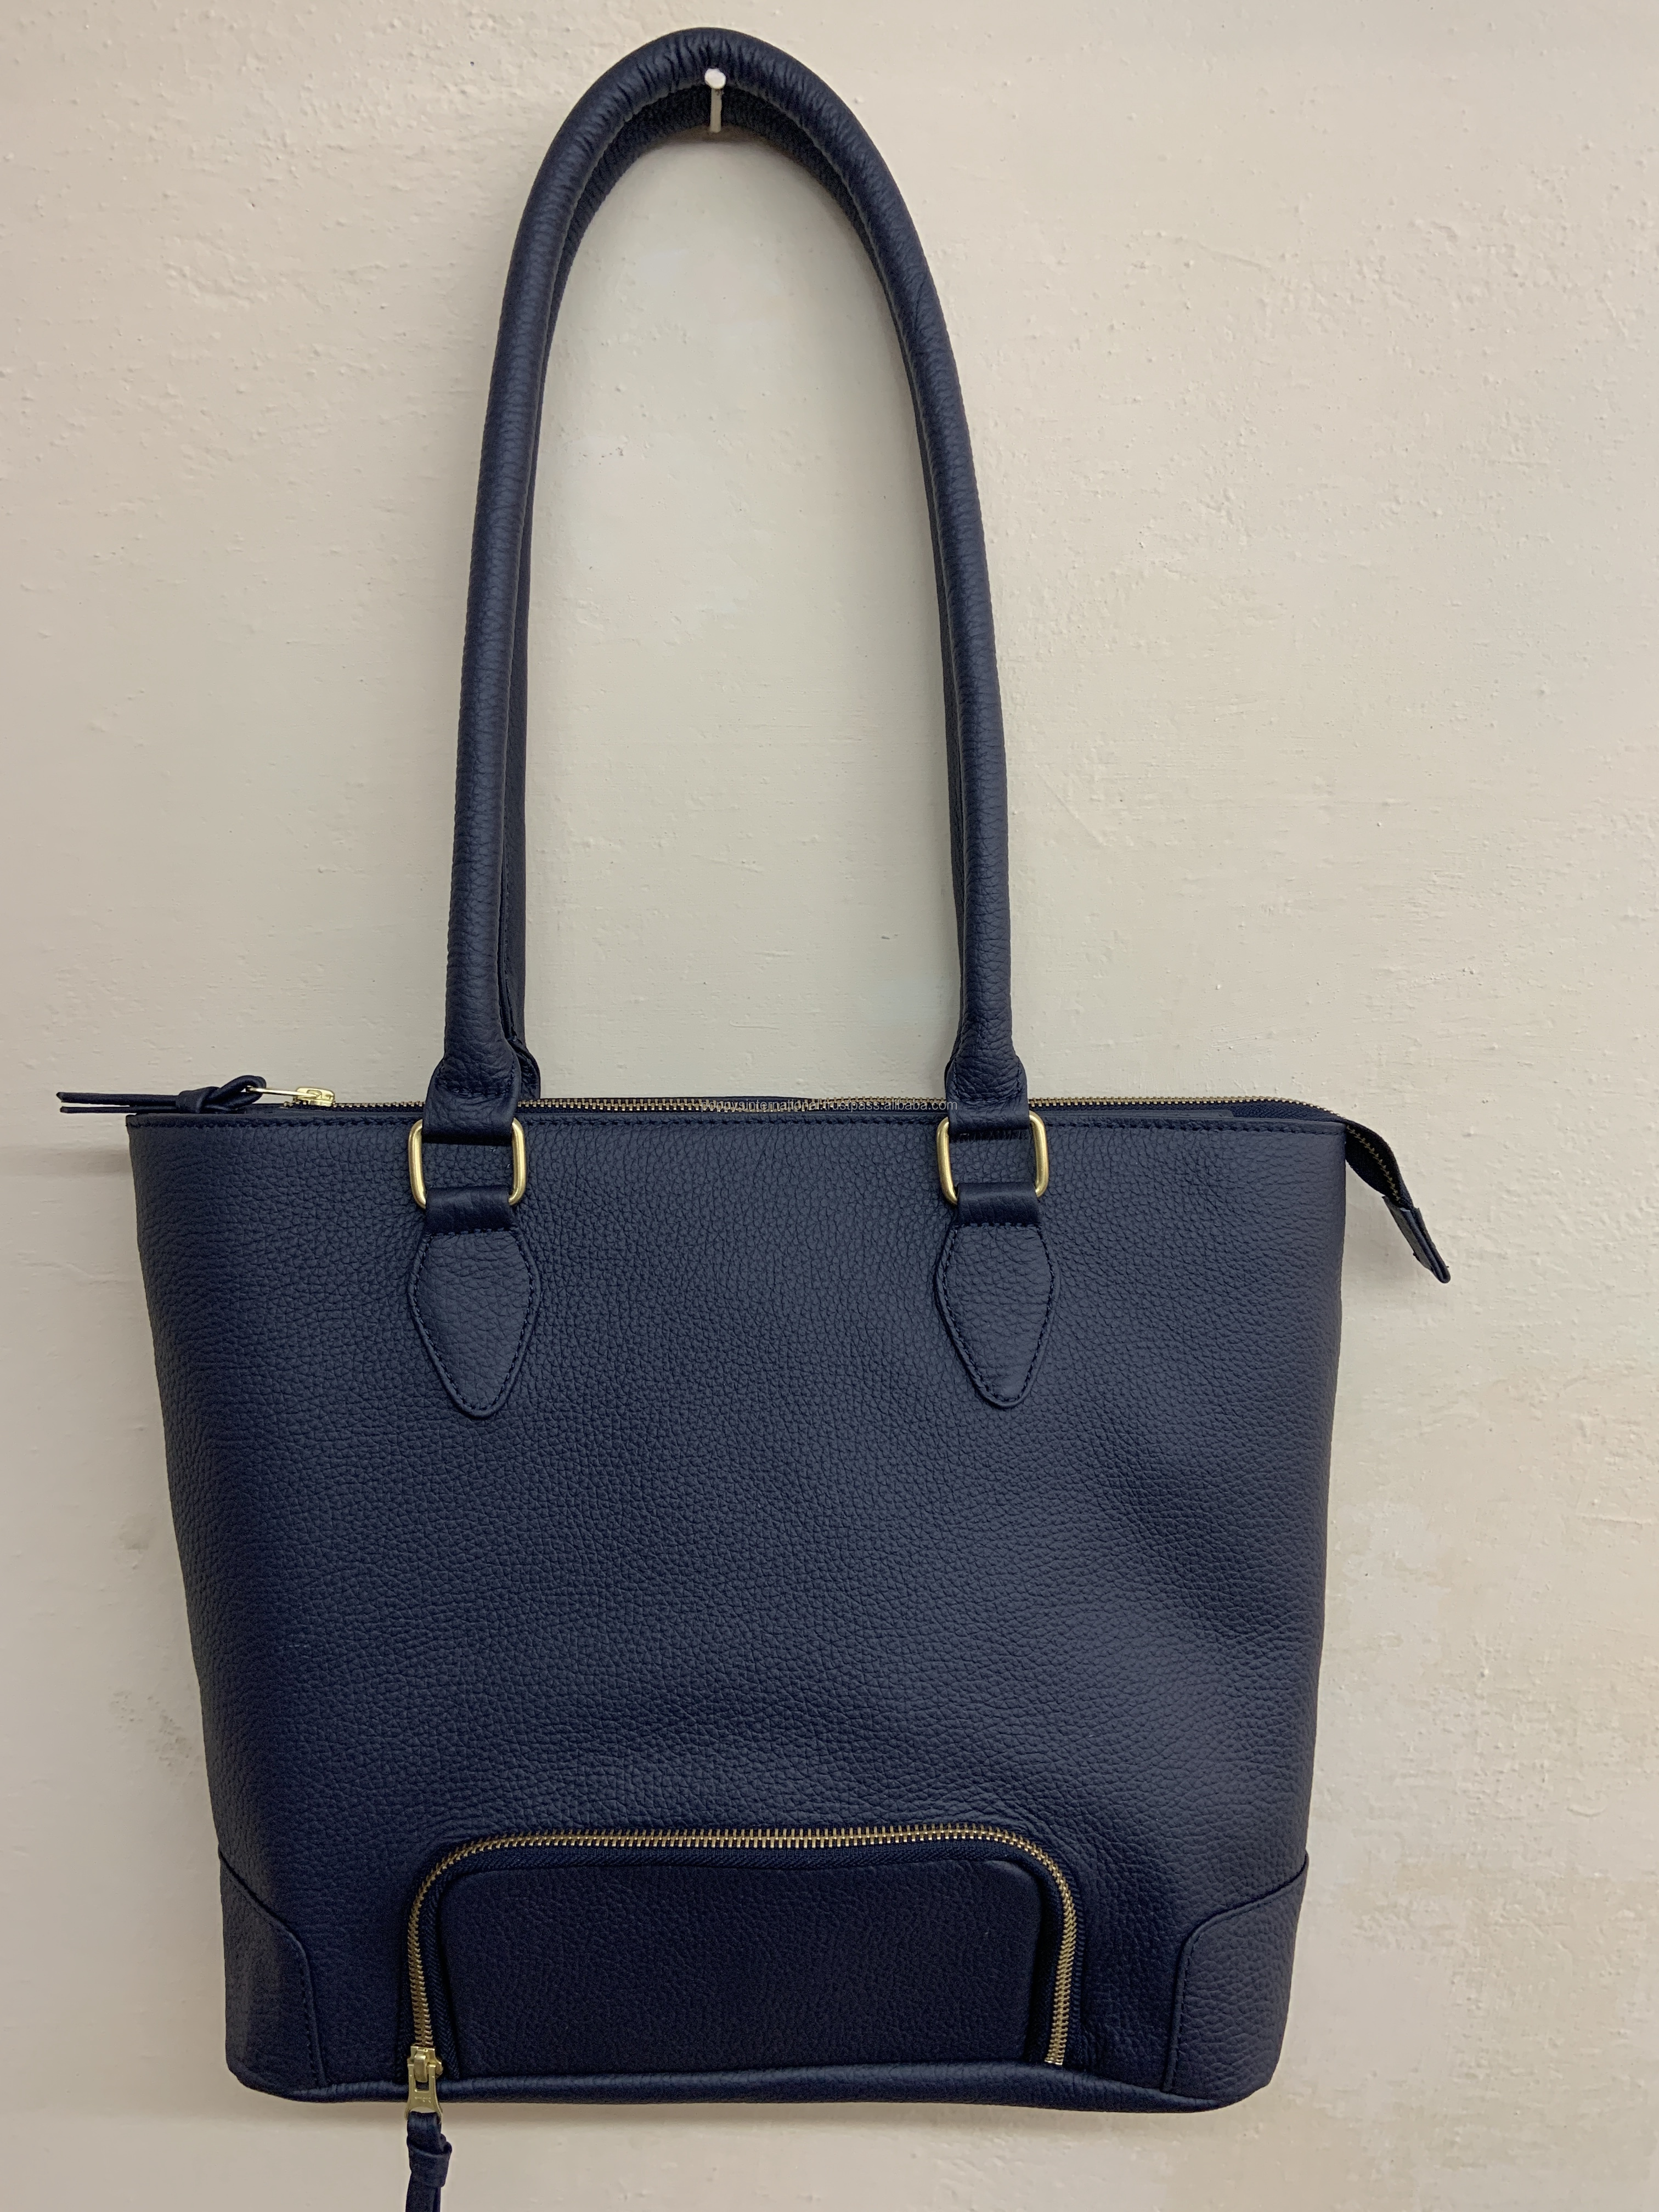 New Leather Tote Bag with built in Lunch Pouch